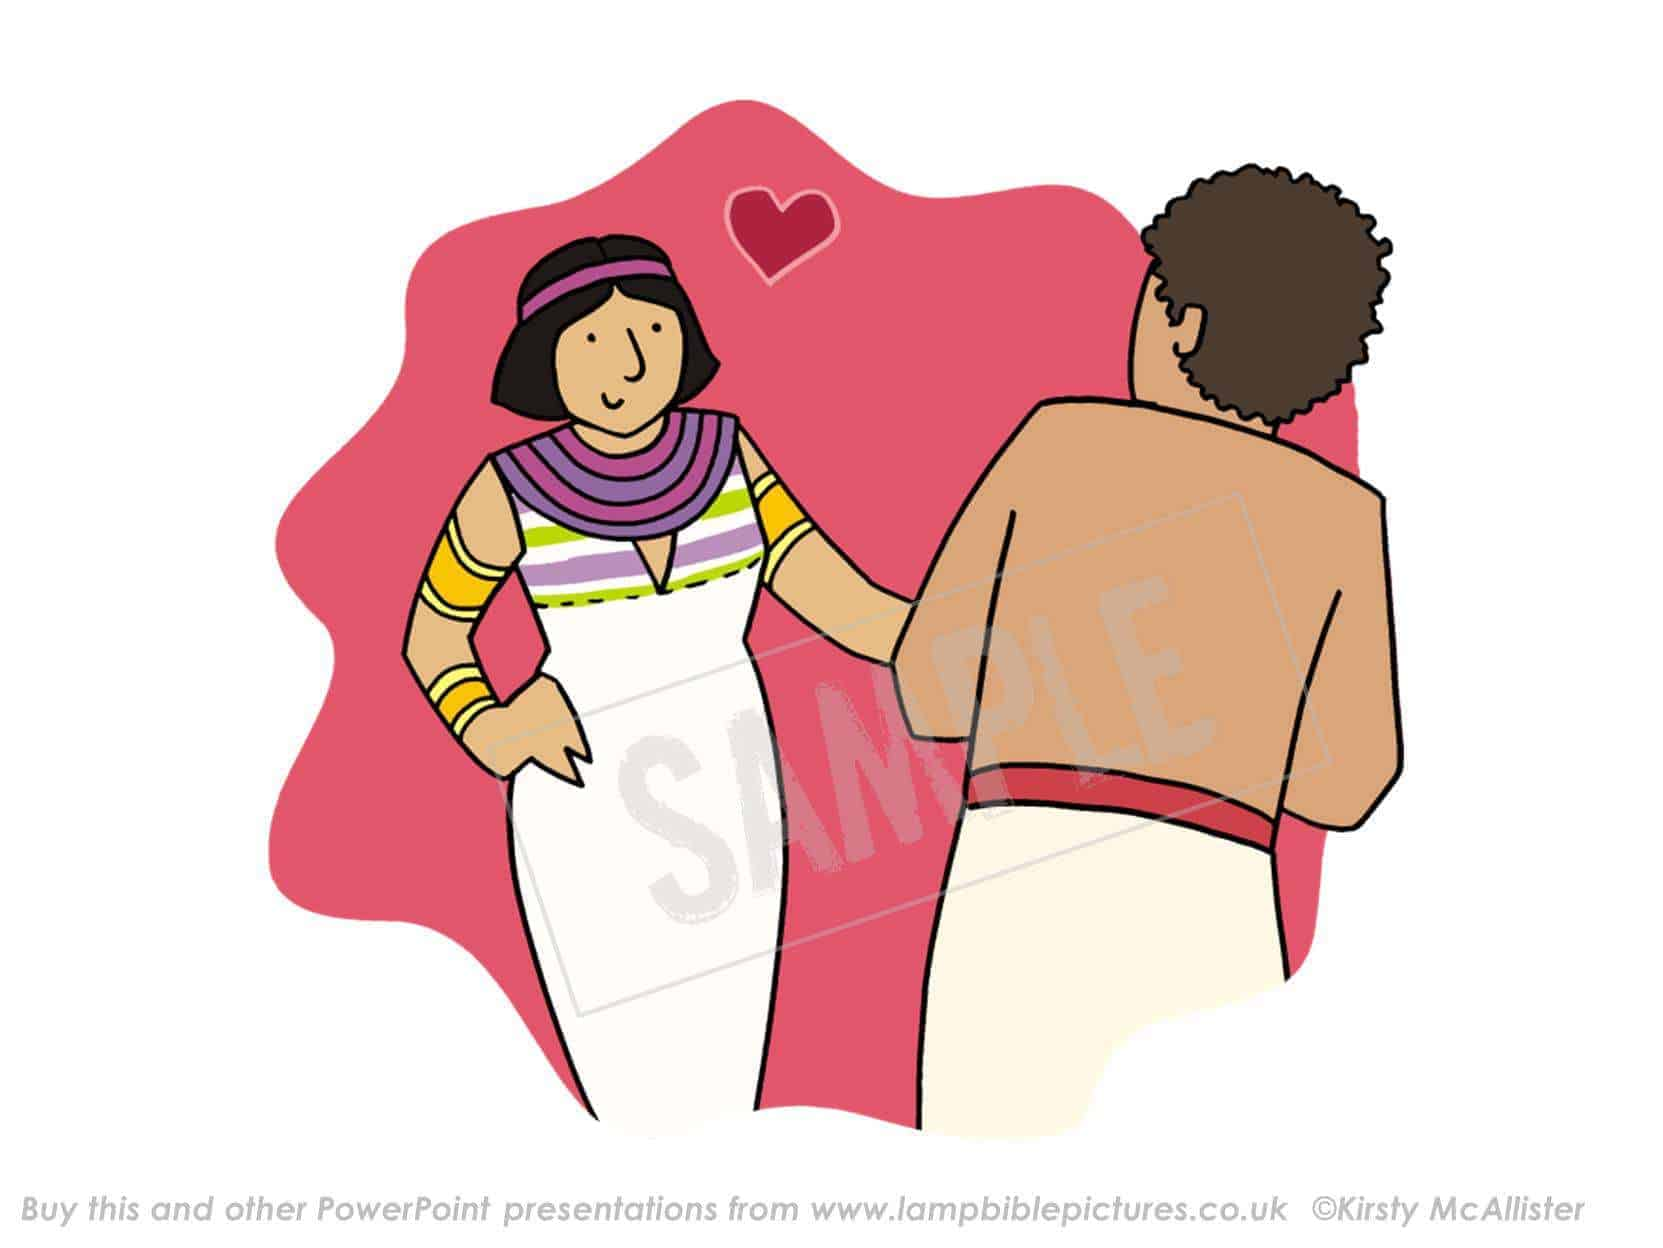 Clipart potiphars wife clipart royalty free library Joseph and Potiphar\'s wife - Lamp Bible Pictures clipart royalty free library